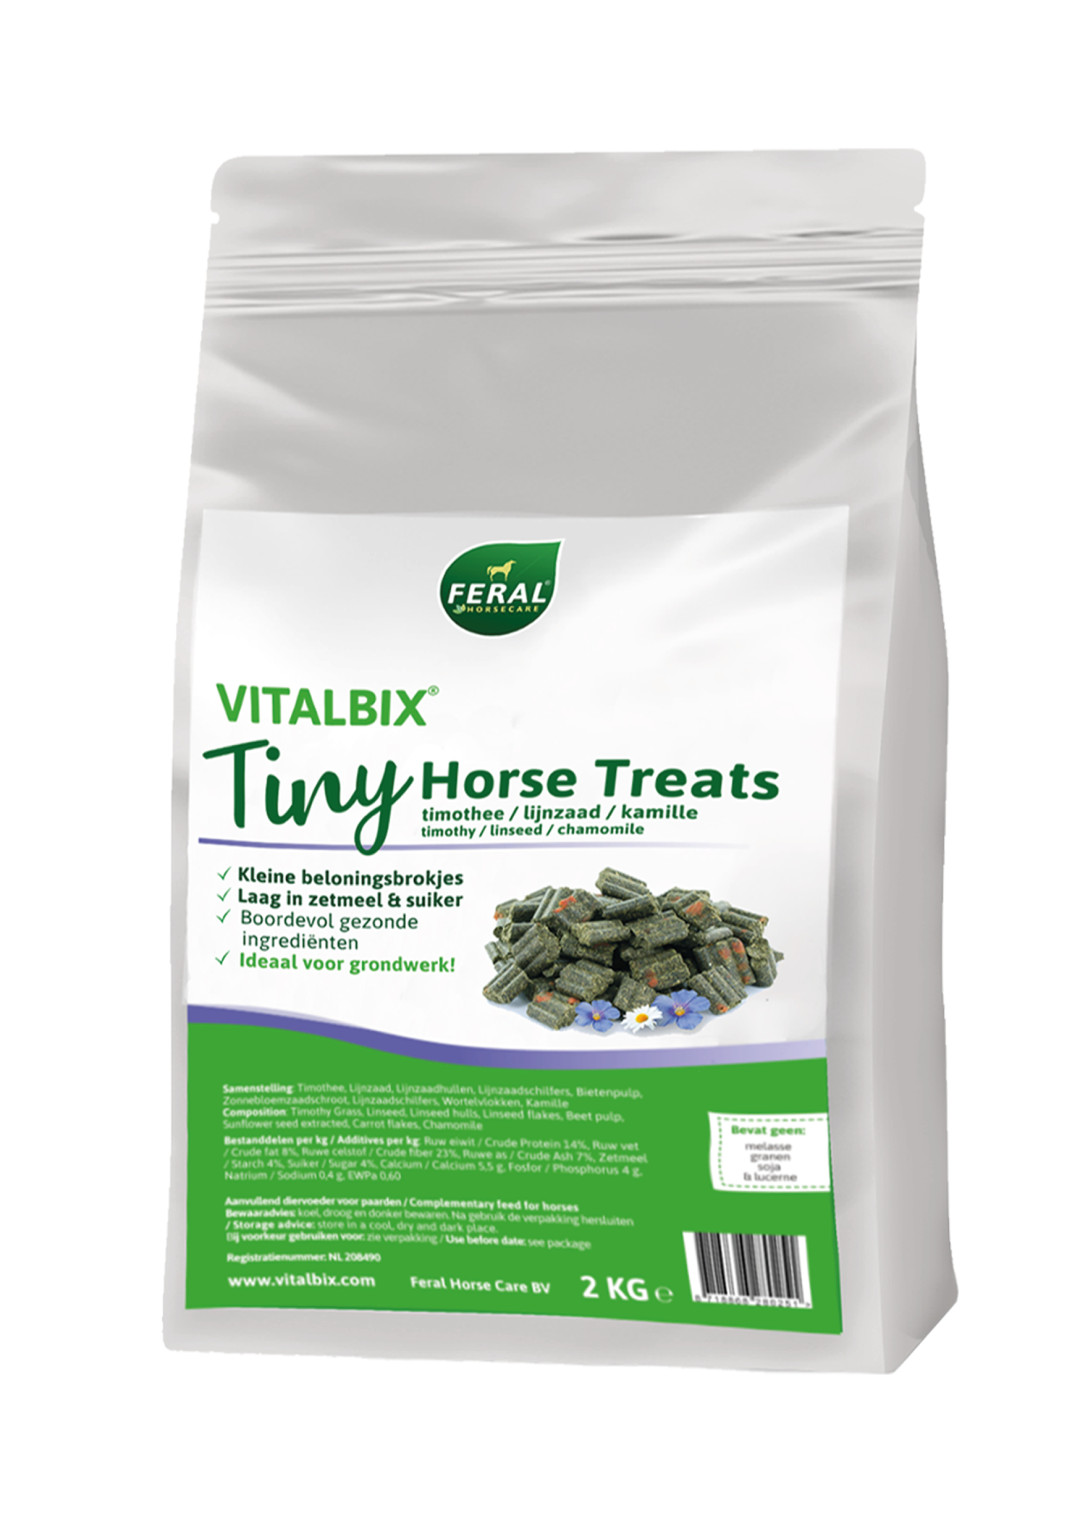 Vitalbix Tiny Horse Treats 2 kg